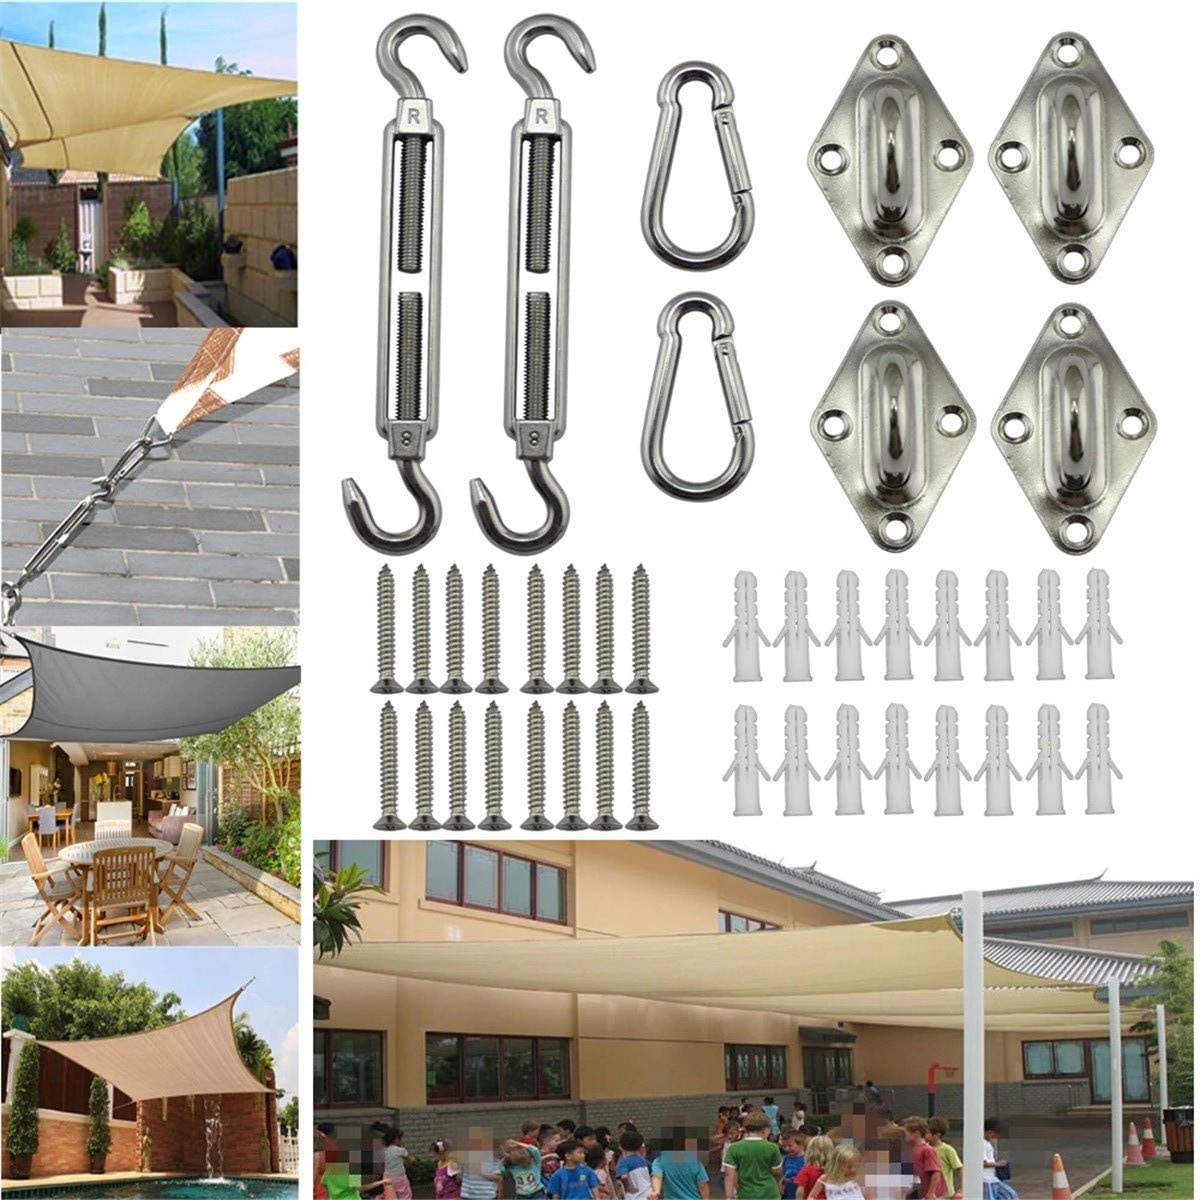 PBQWER Sun Shade Sail Kit of Rectangle Or Triangle Sails, Heavy Duty Stainless Steel for Outdoor Using